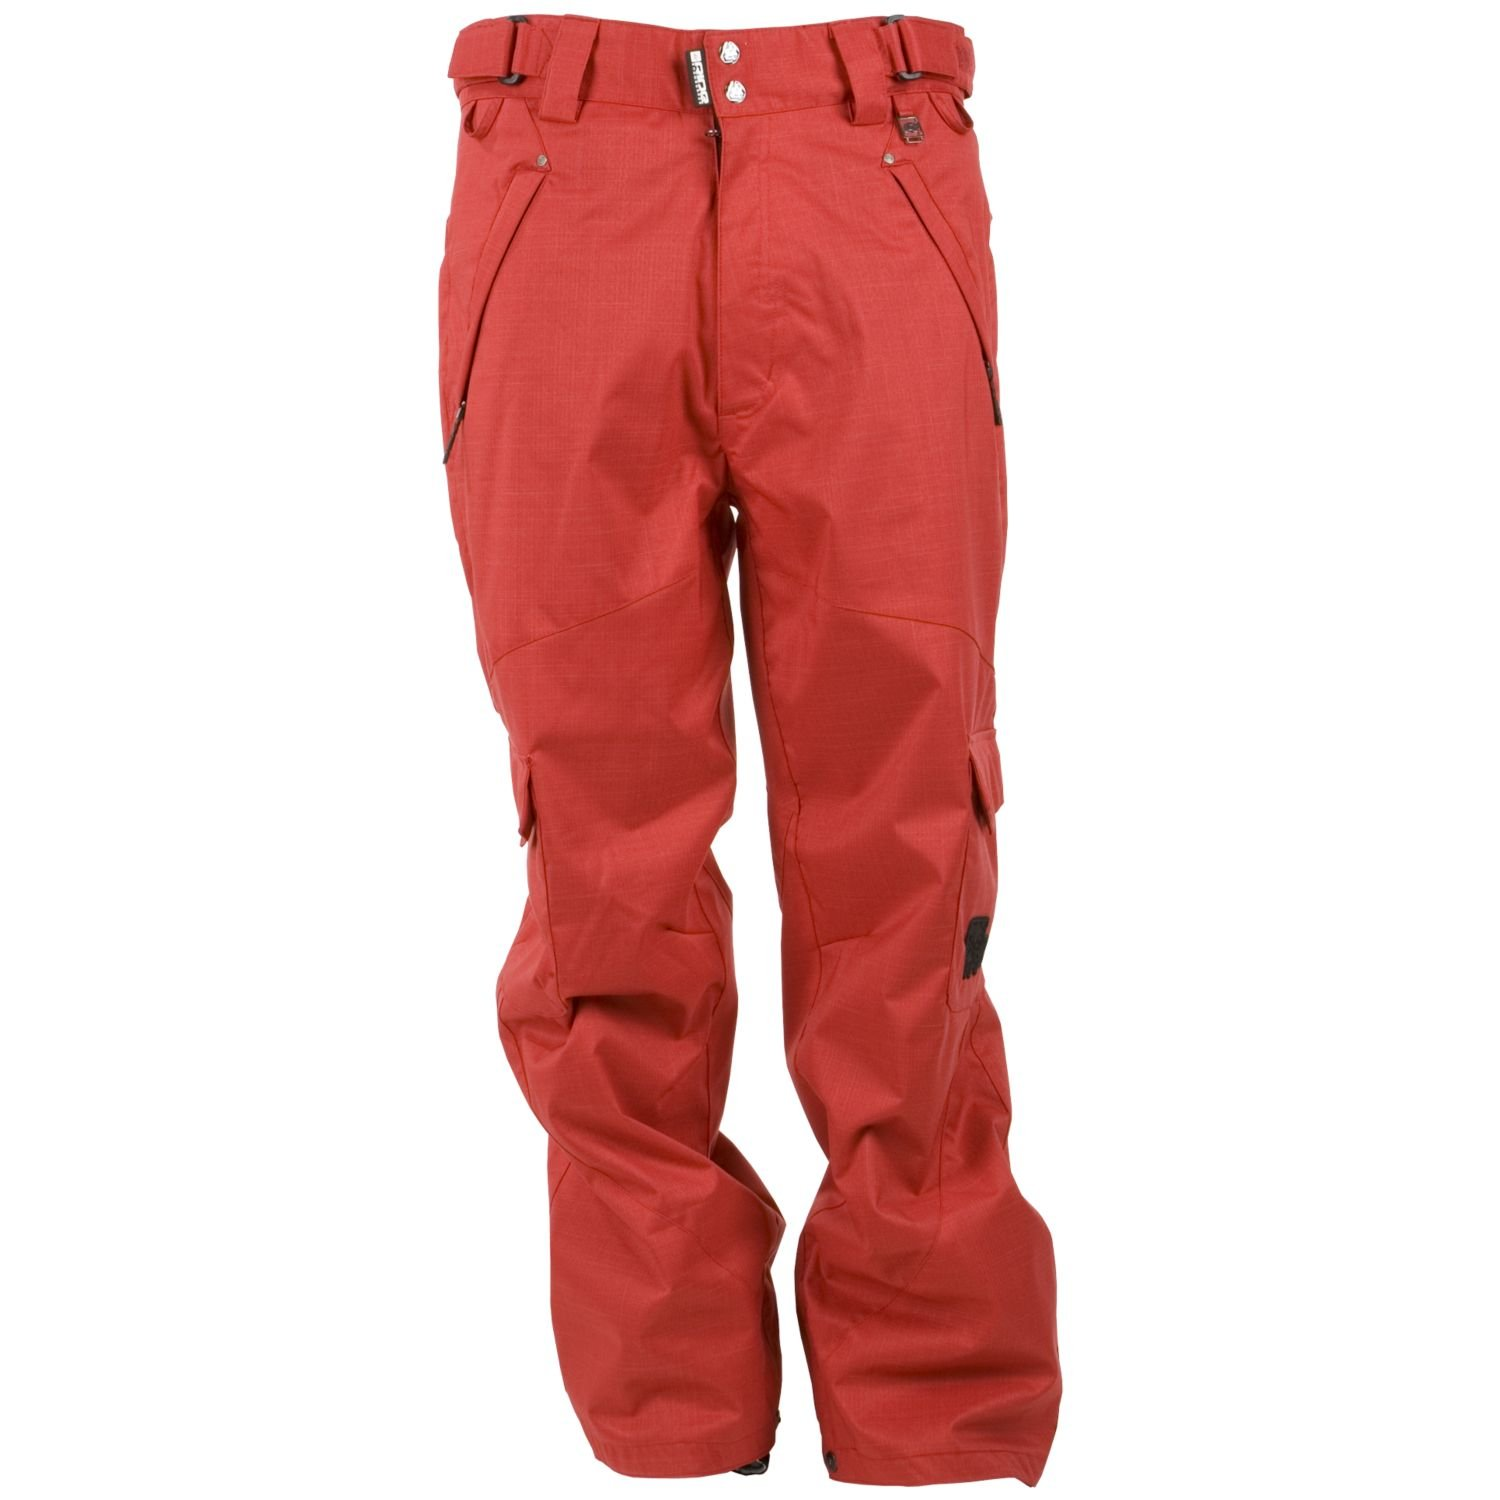 Ride Phinney Pant Snowboardhose (red rover) jetzt bestellen